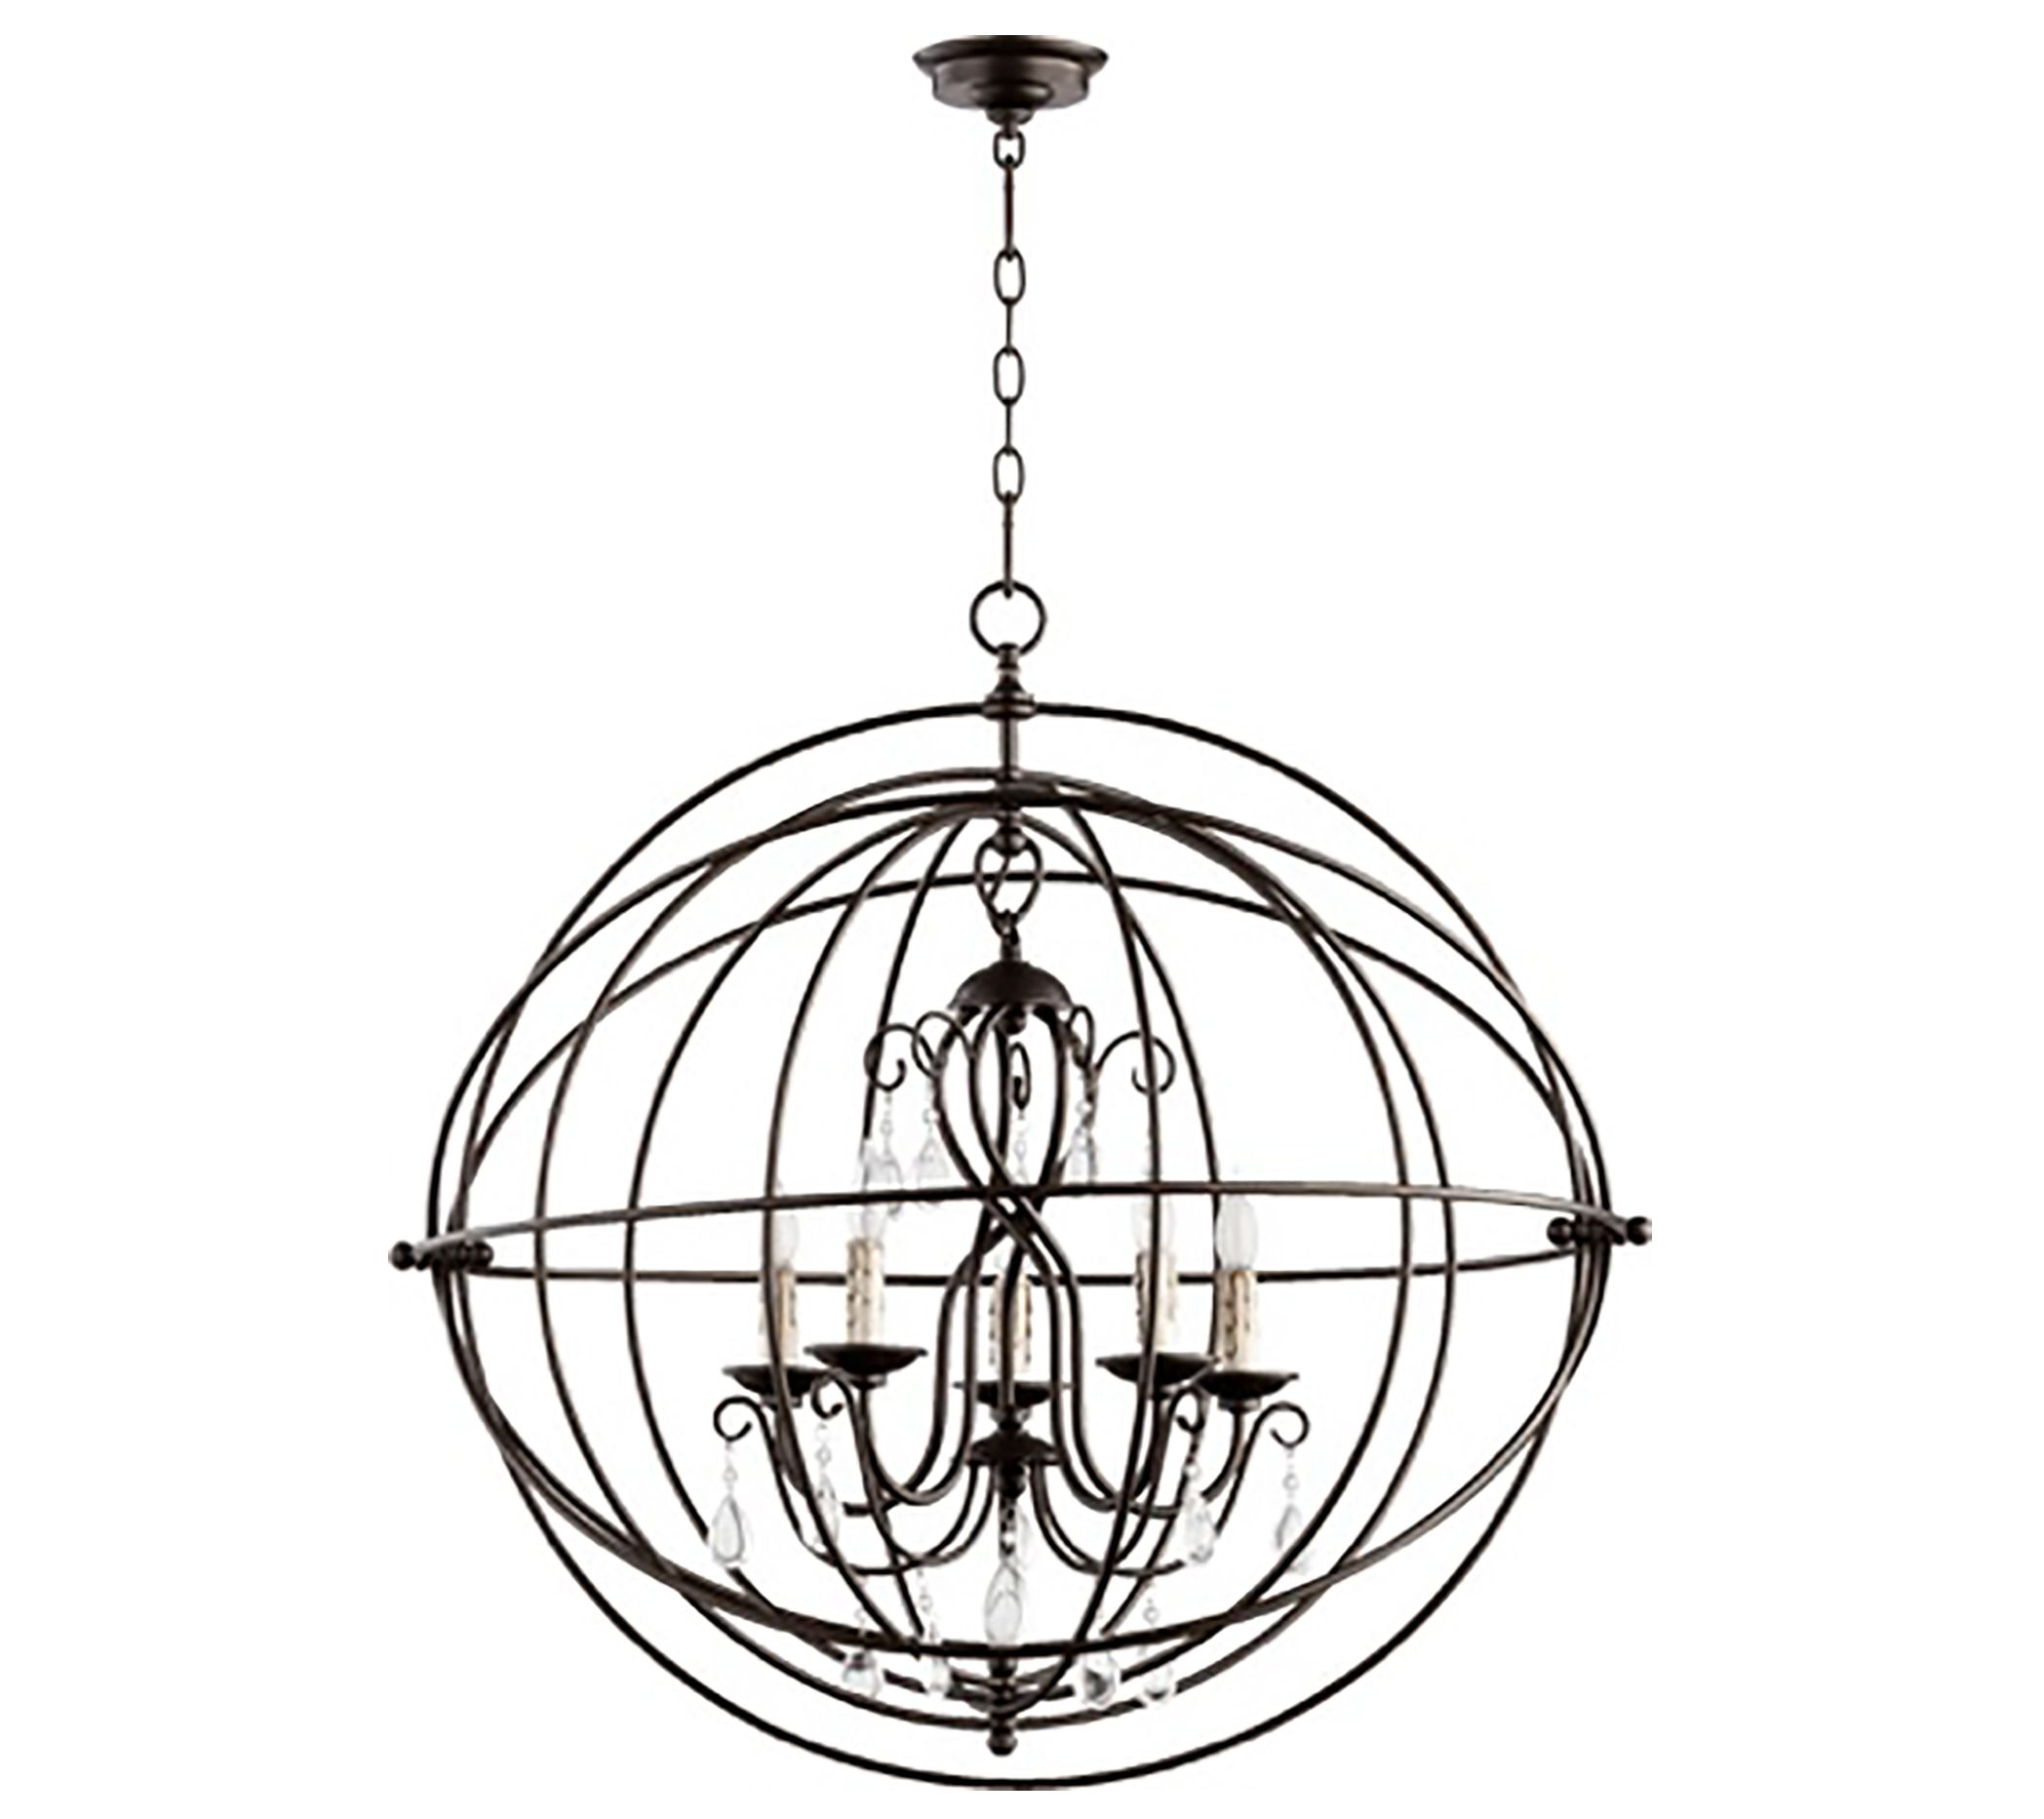 This orb chandelier can visually soften the hard straight lines